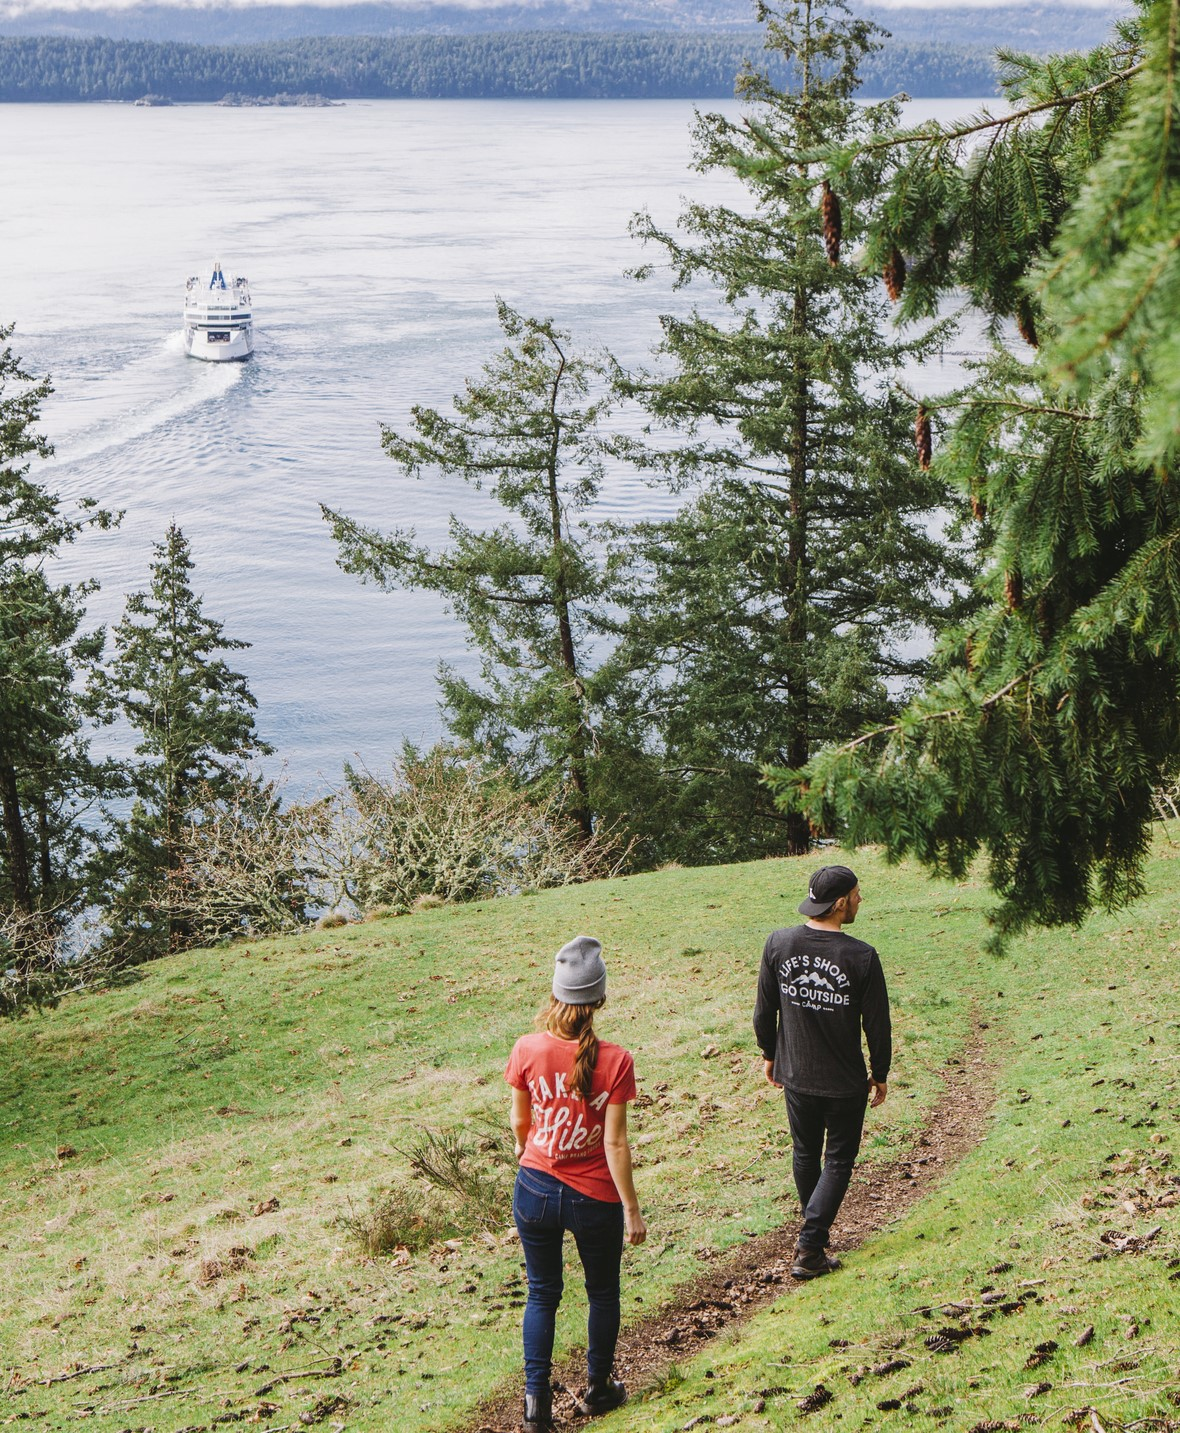 The Southern Gulf Islands partnership aims to extend tourism to the region year-round (Destination BC/Ben Giesbrecht)